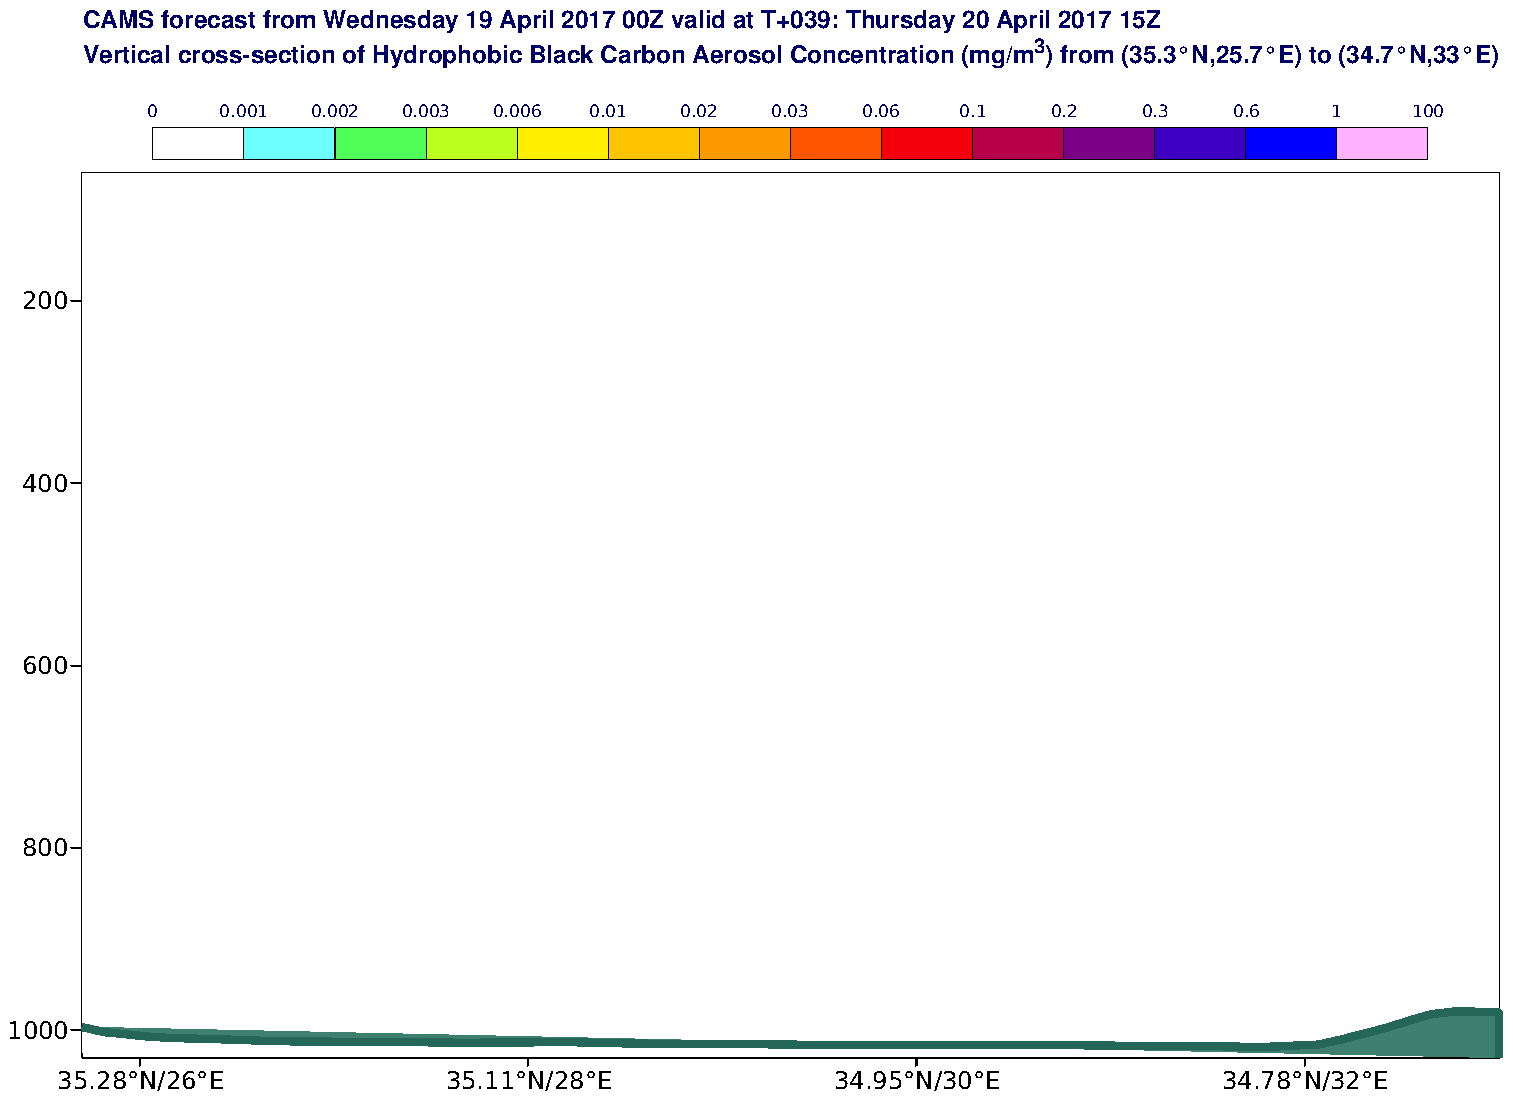 Vertical cross-section of Hydrophobic Black Carbon Aerosol Concentration (mg/m3) valid at T39 - 2017-04-20 15:00